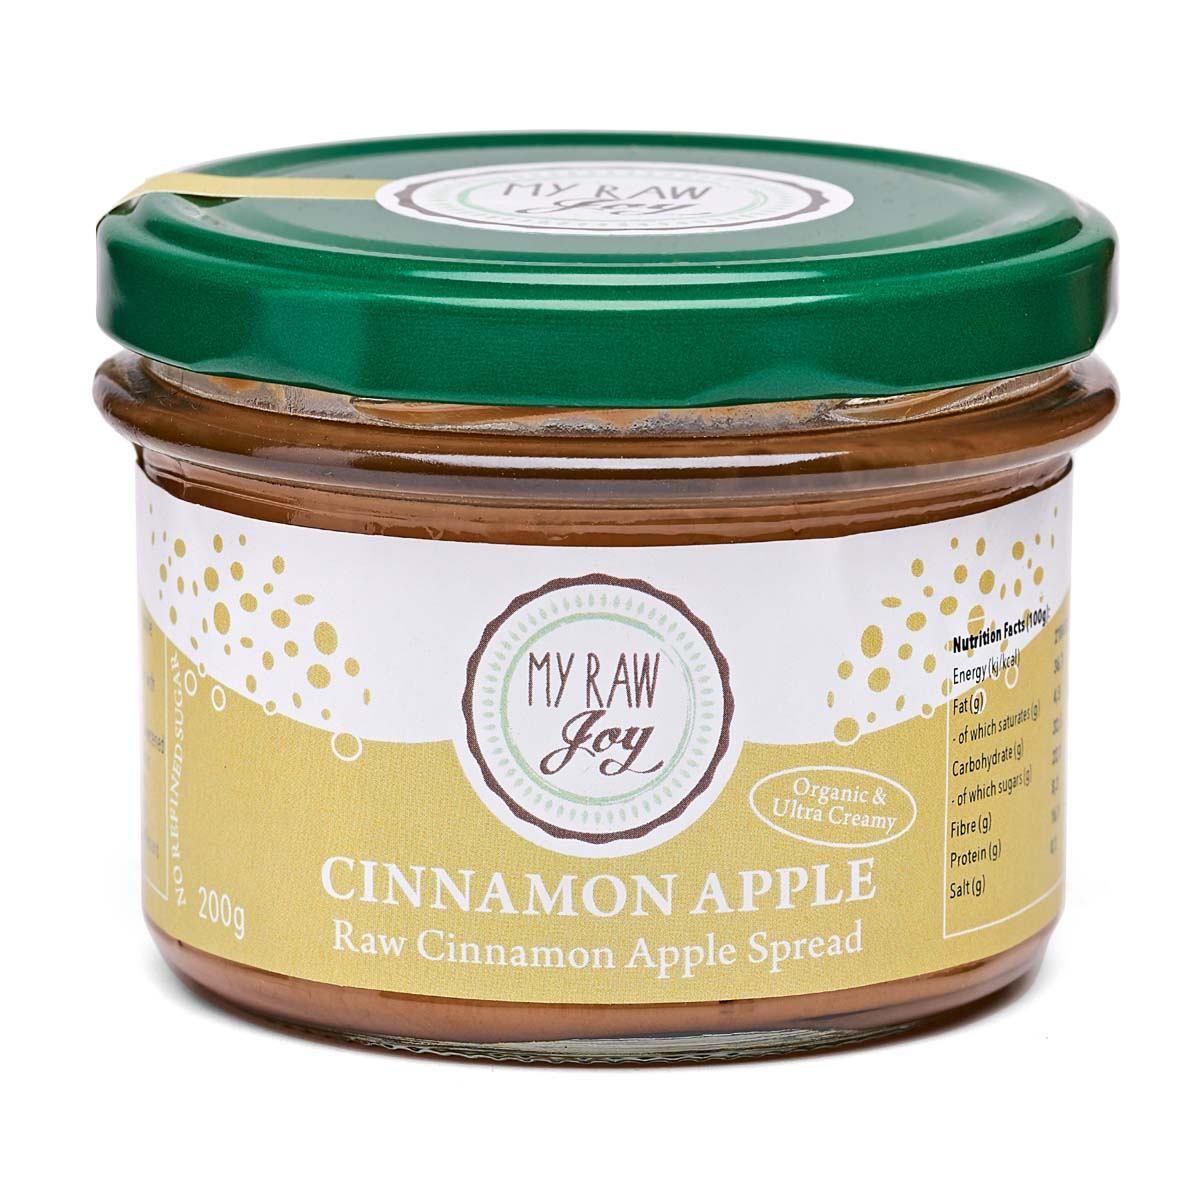 My Raw Joy - Activated Cinnamon Apple Spread (200g)